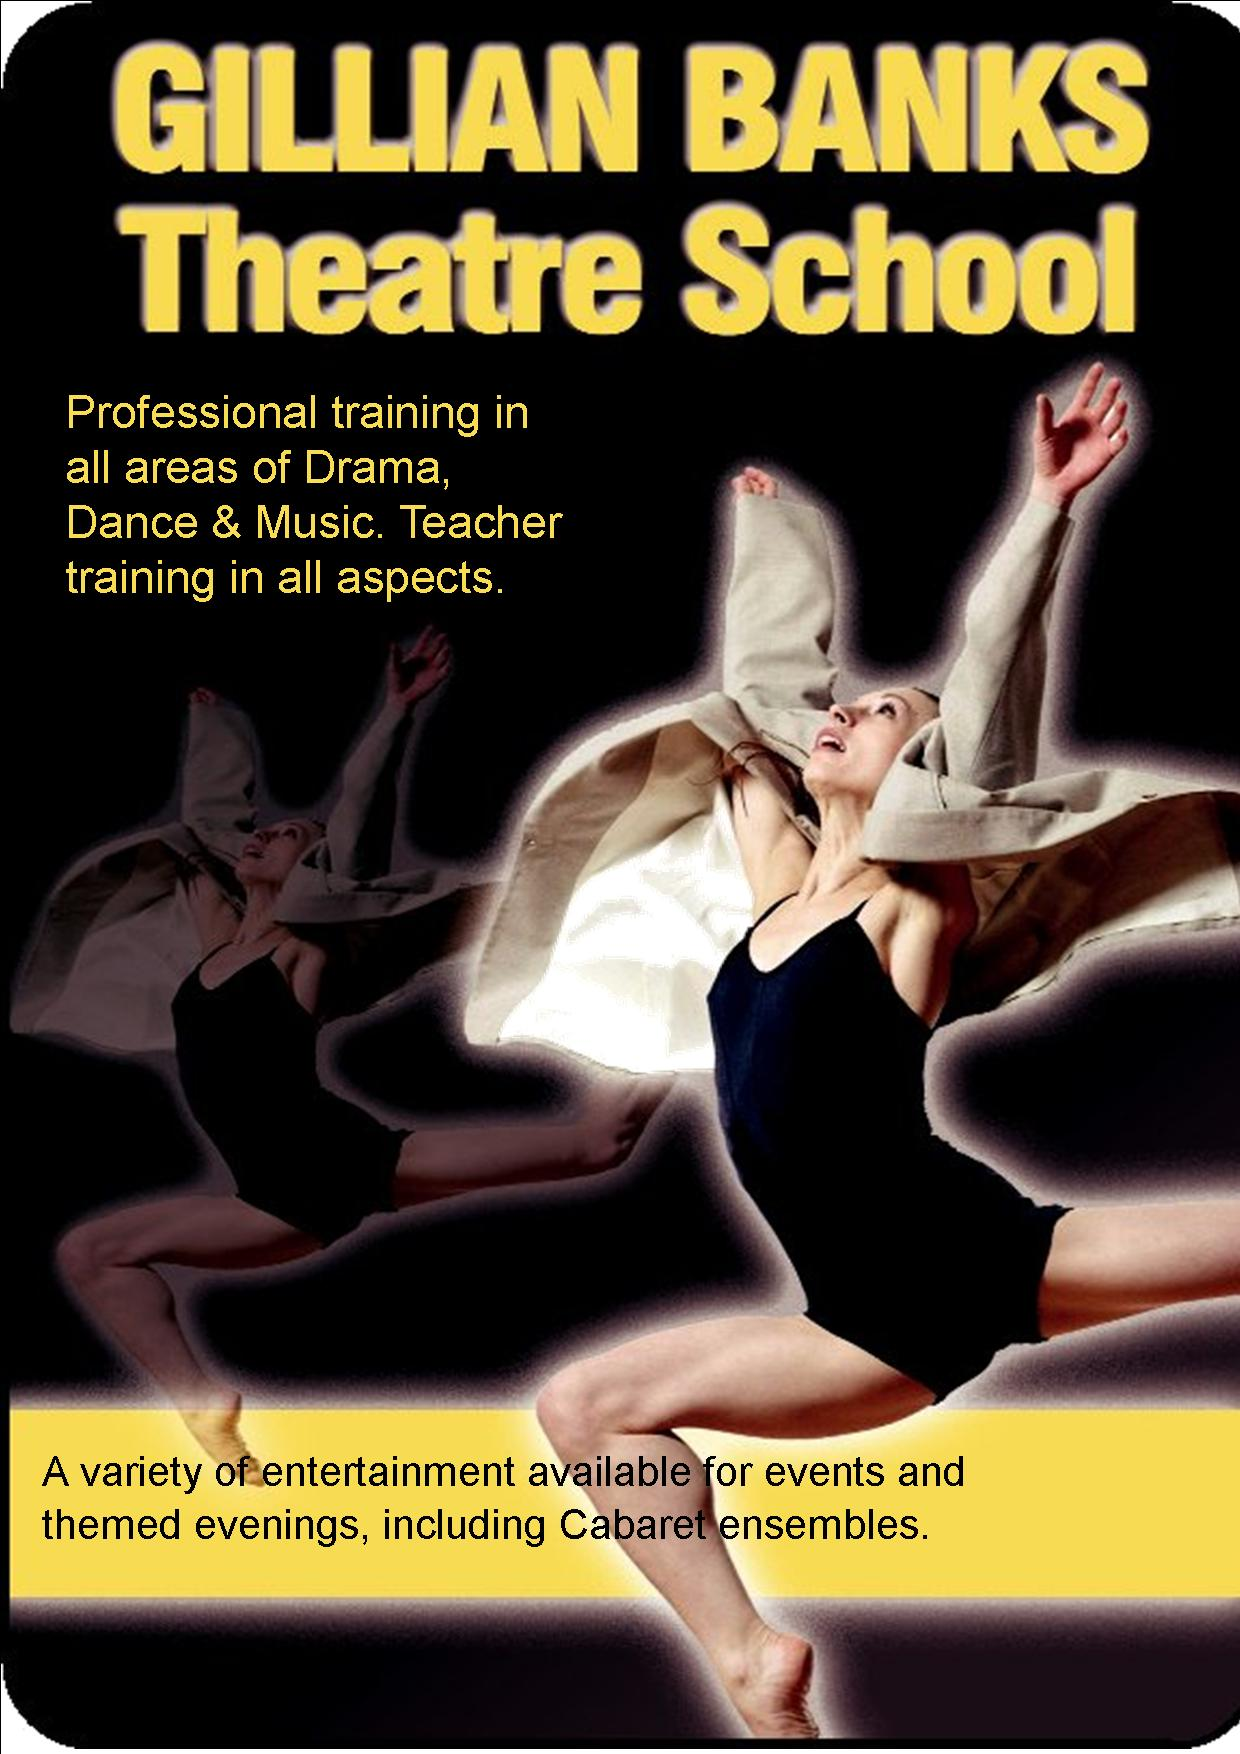 gillian banks theatre school advert